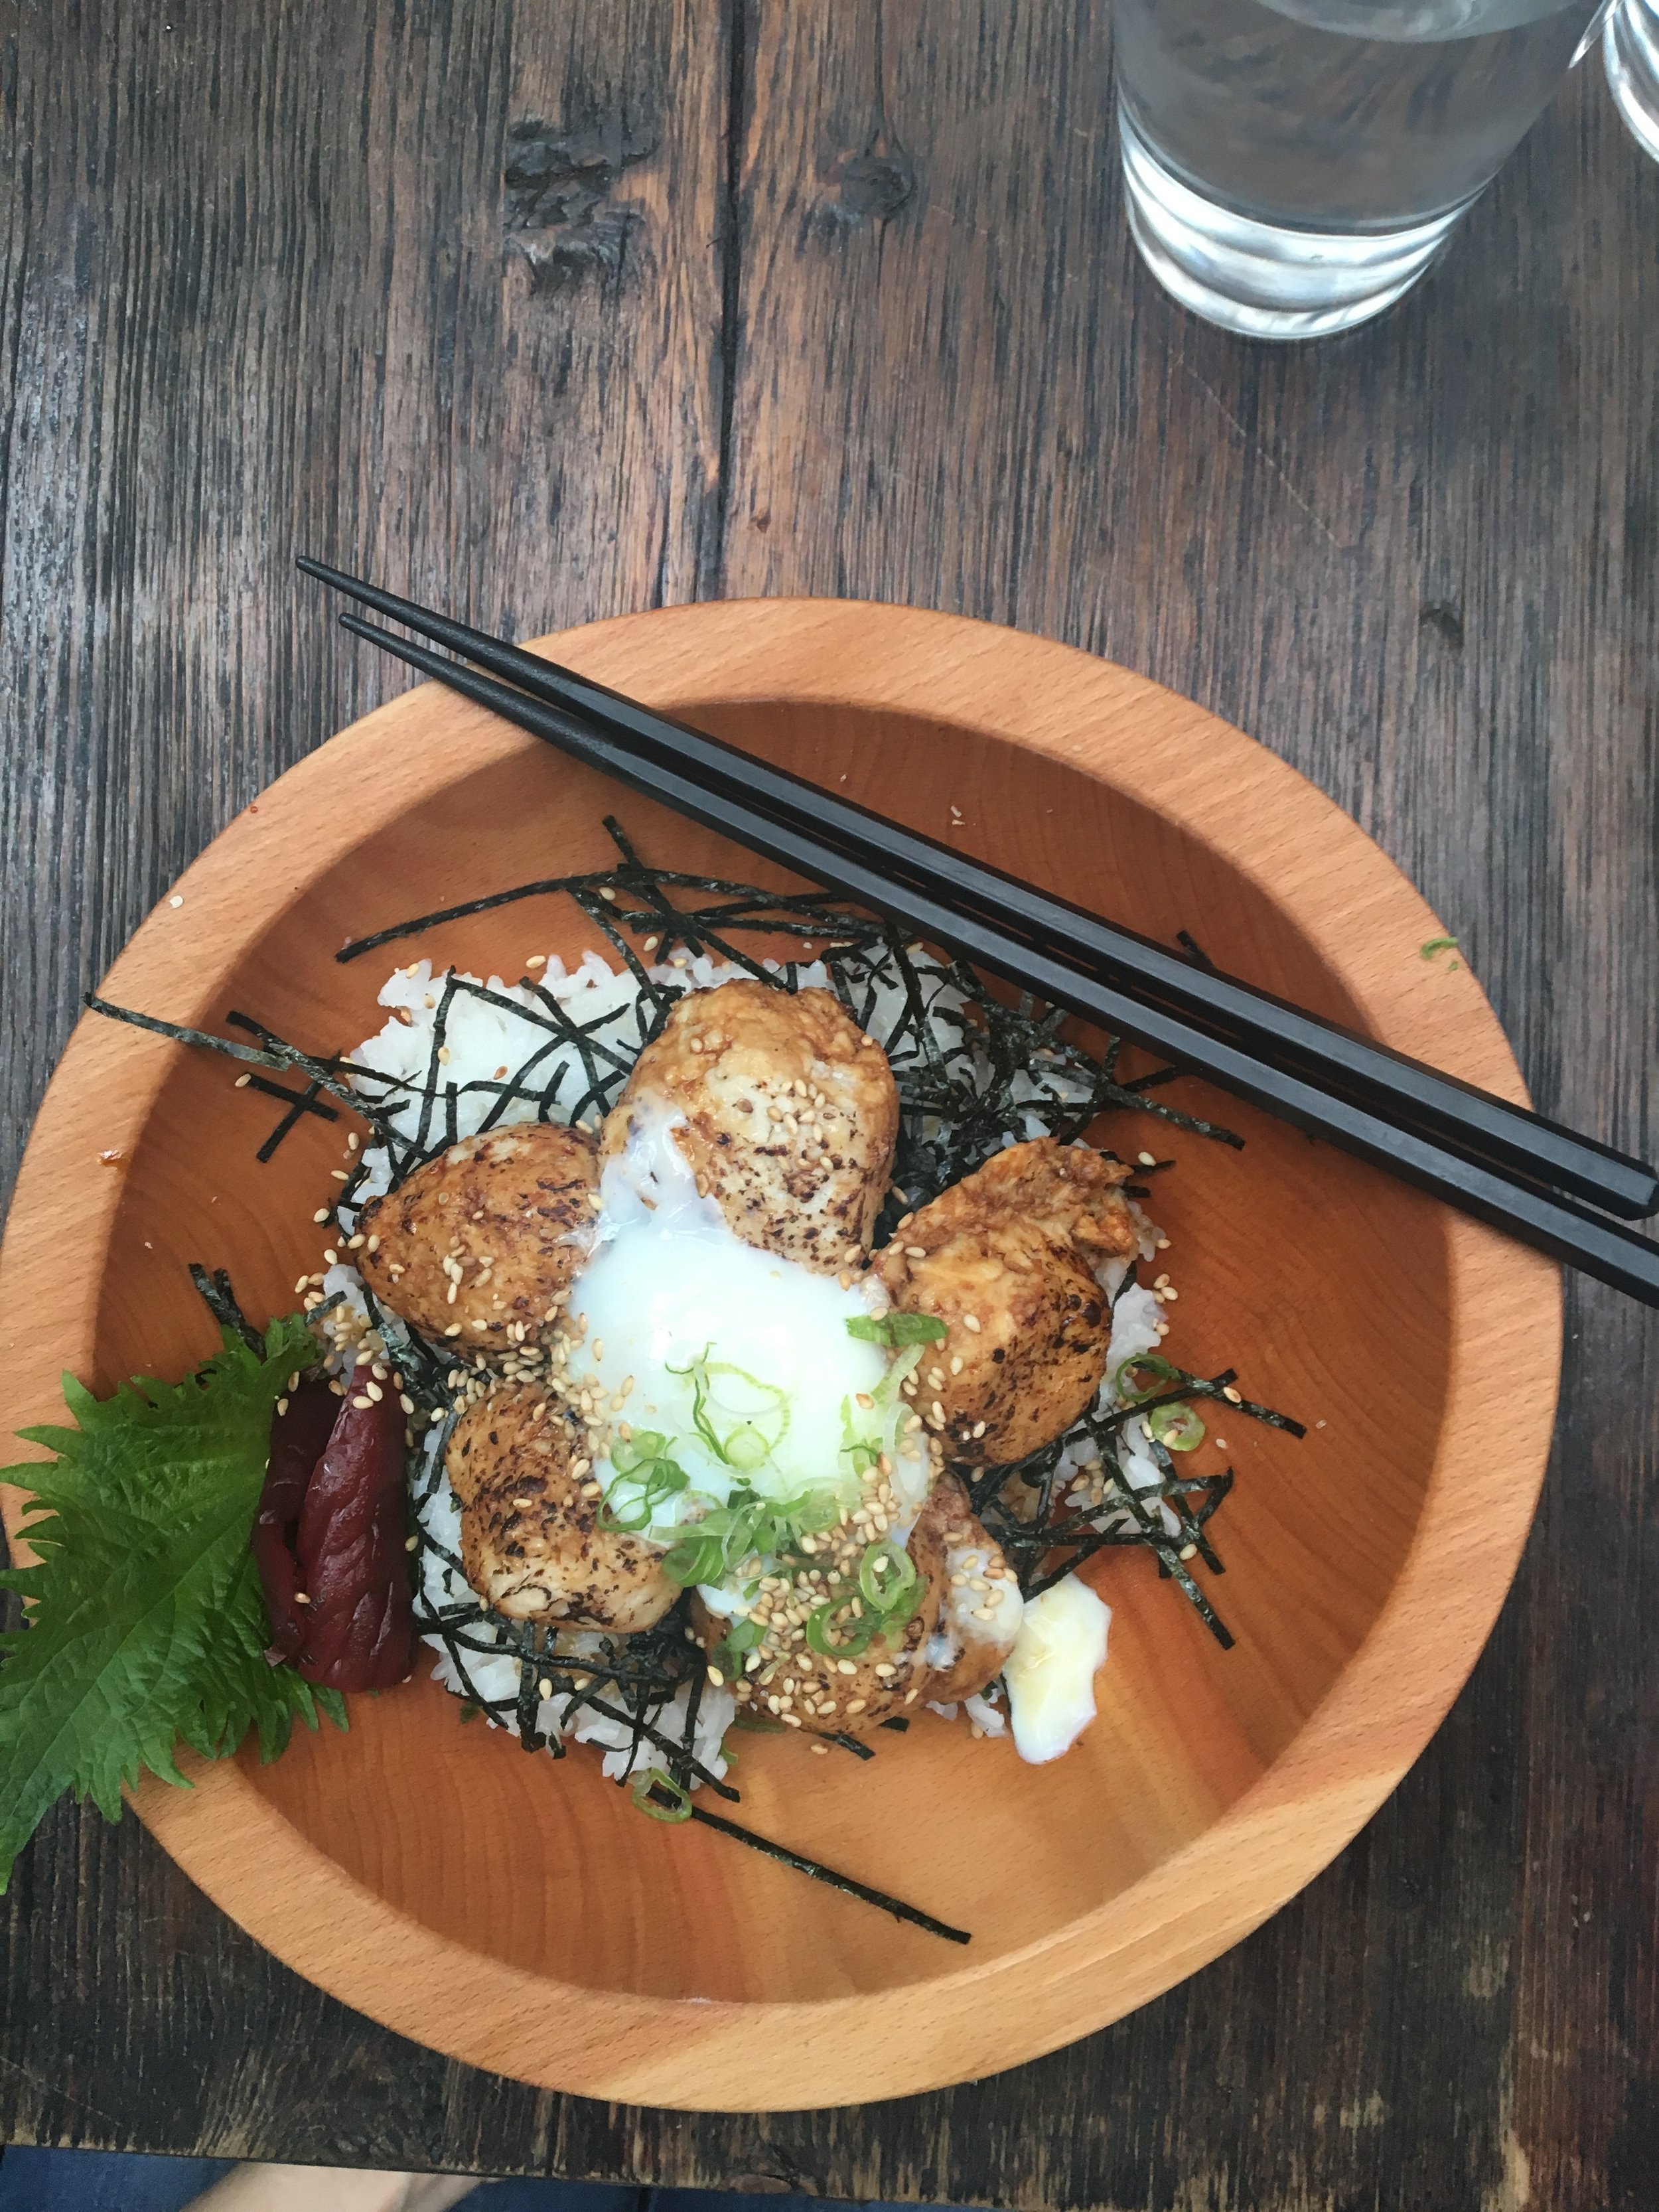 I ordered the Tsukune Don: japanese chicken meatballs over nori and topped with a soft egg.